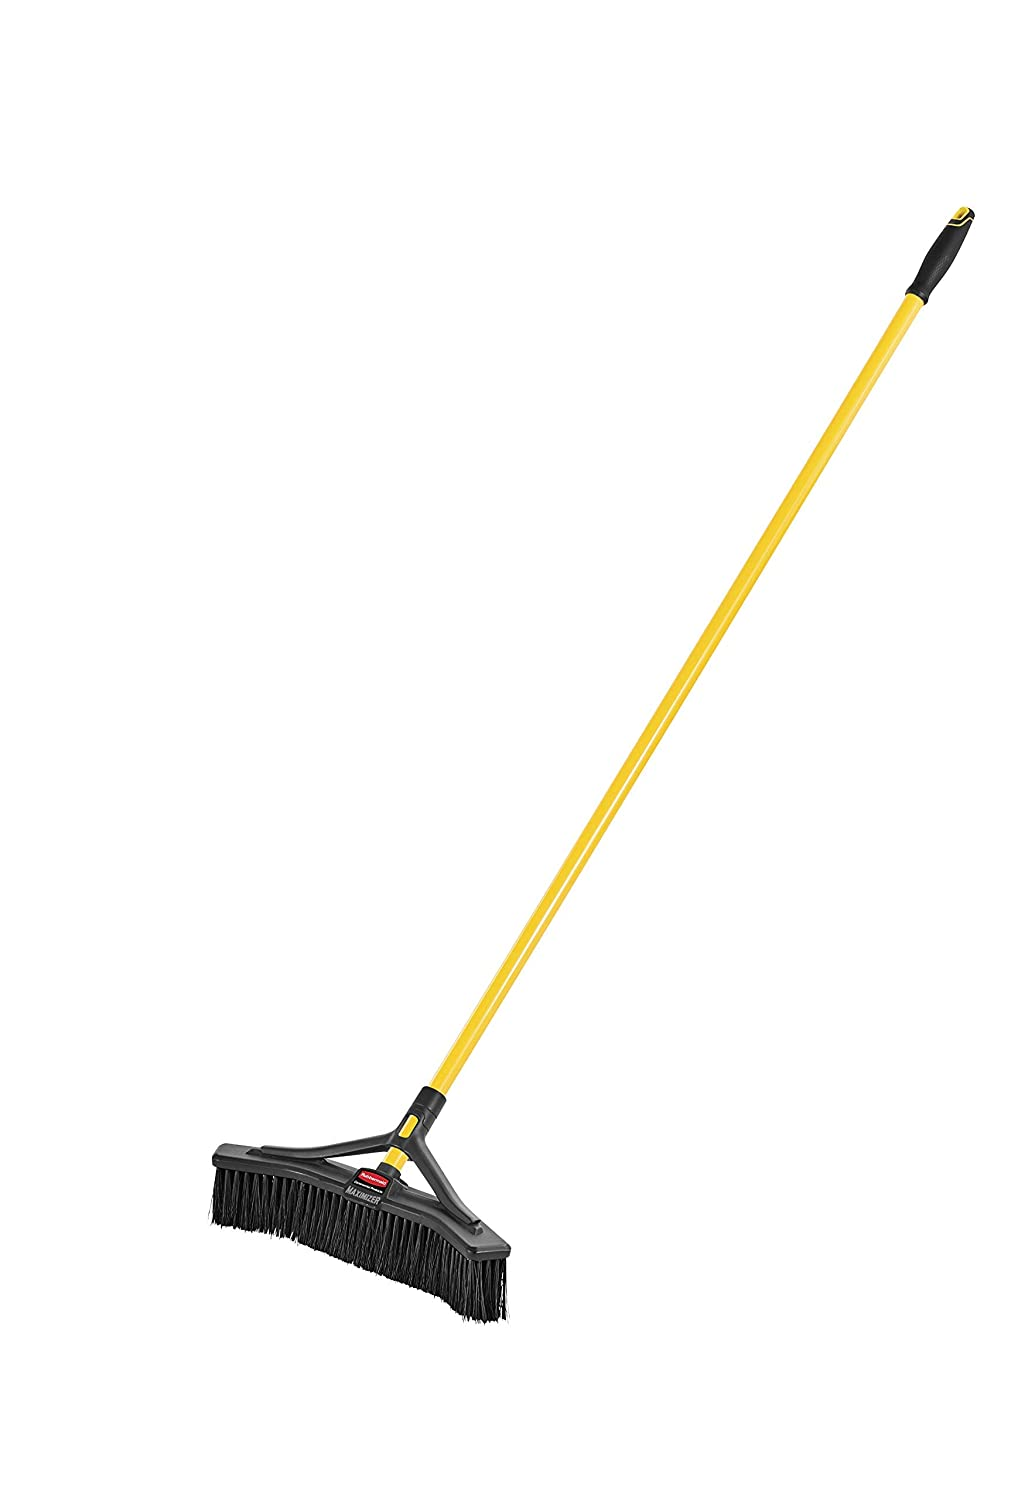 """Rubbermaid Commercial Products Maximizer Push-to-Center Broom with Multi-Purpose Bristle, 18"""" Wide, Black (2018727) (Renewed)"""